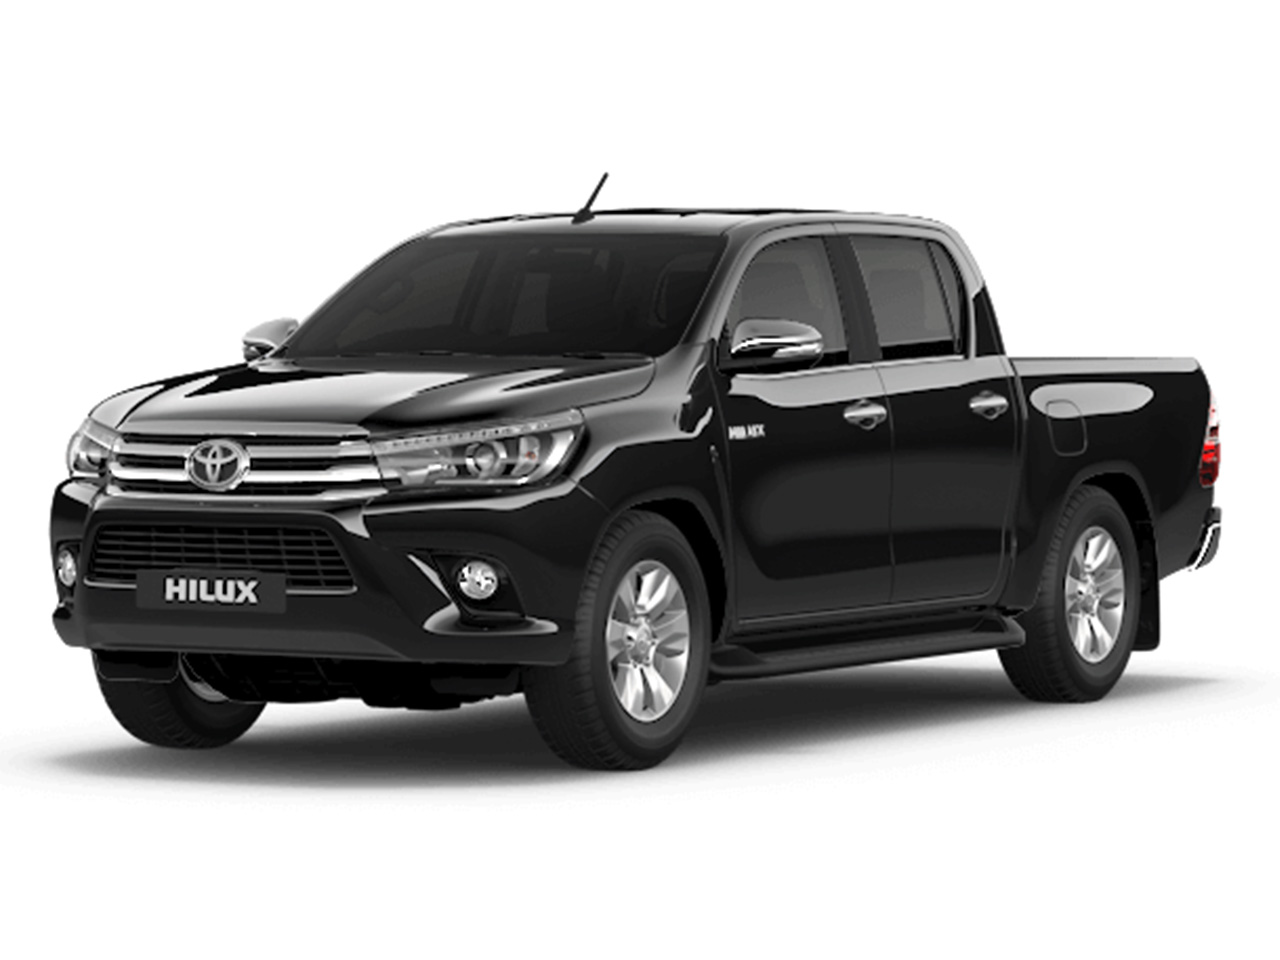 toyota hilux 2018 2 7l double cab 4x4 in qatar new car prices specs reviews photos yallamotor. Black Bedroom Furniture Sets. Home Design Ideas